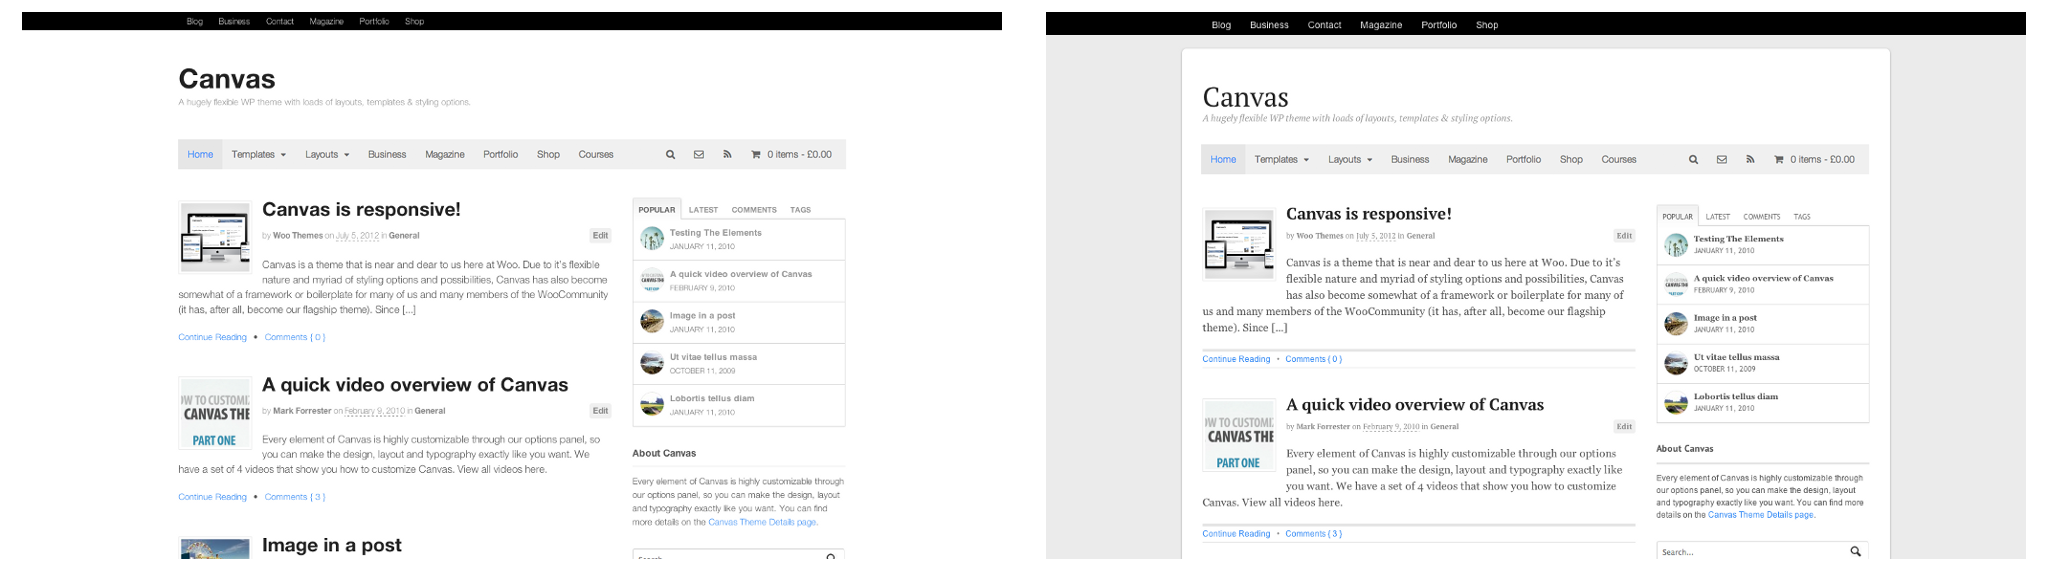 canvas-layout-compare